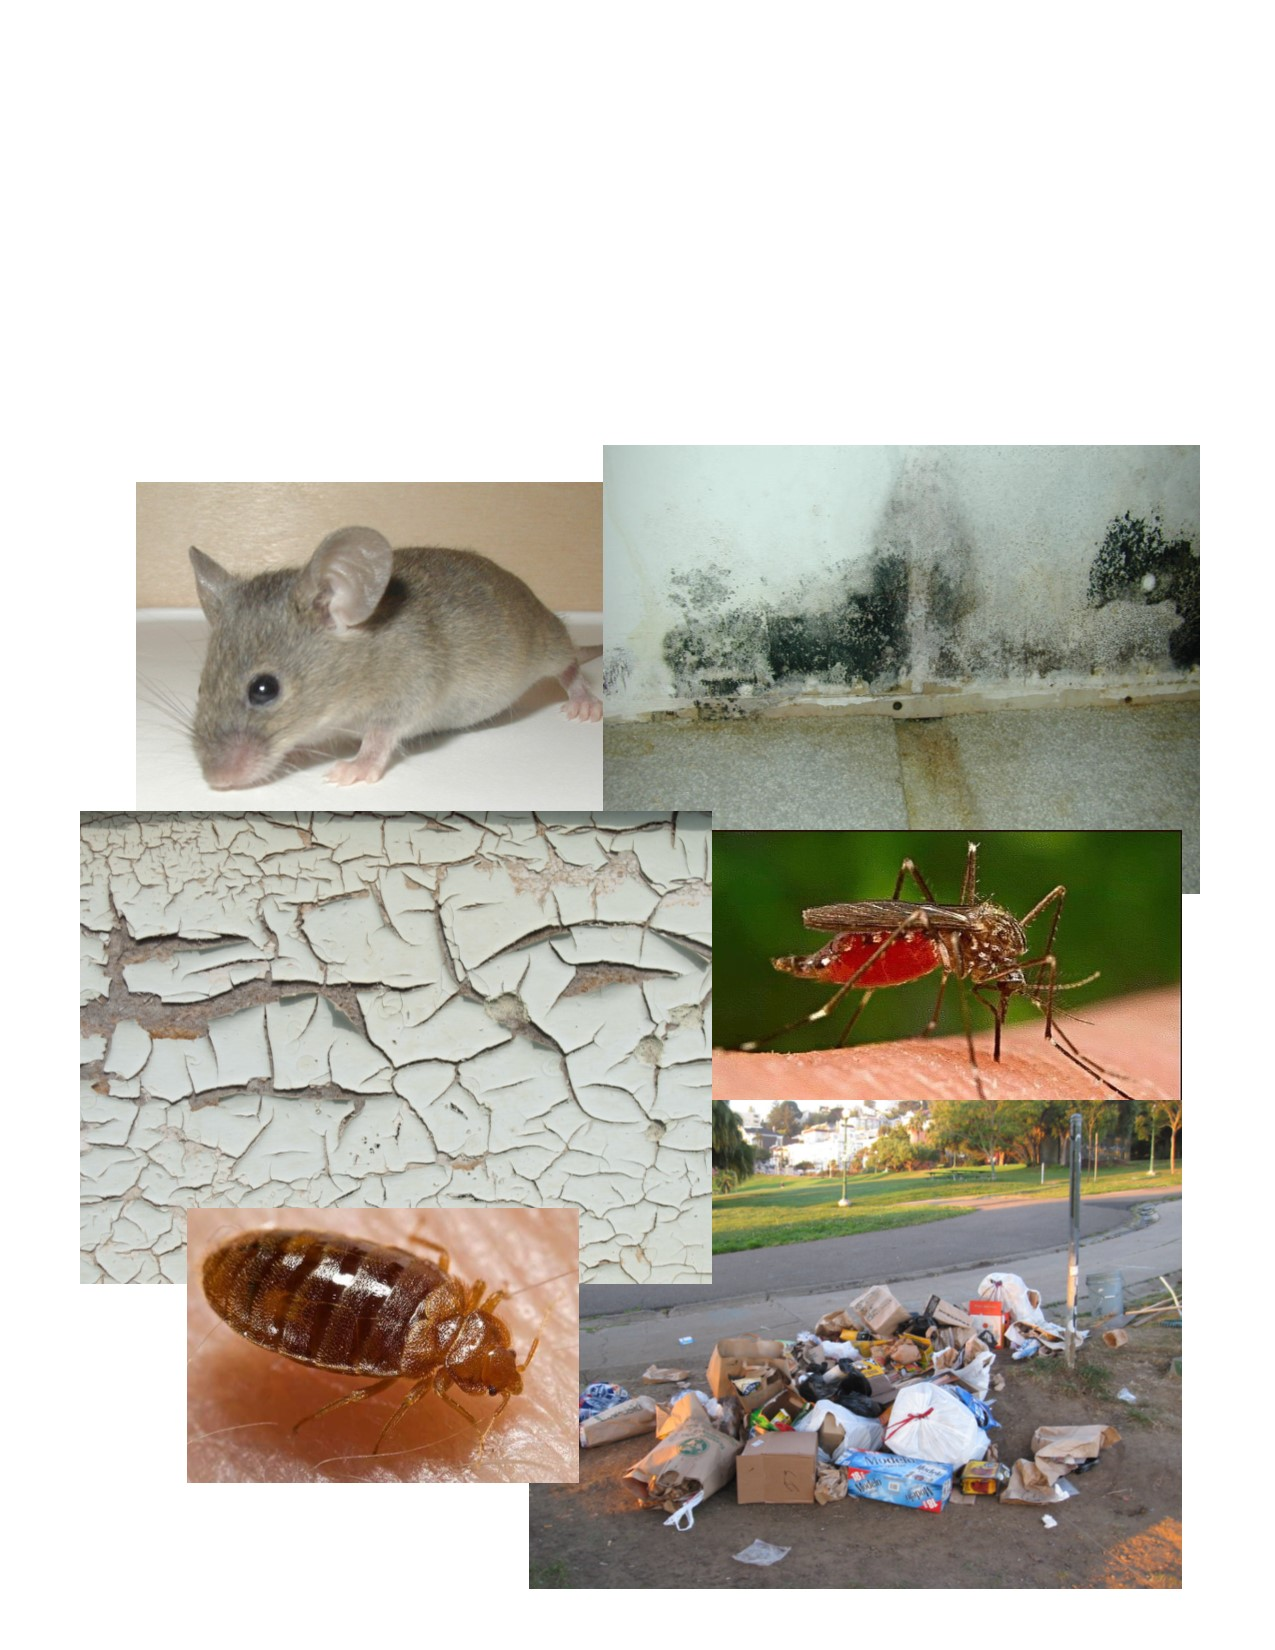 Other environmental health issues we address: - Air and water qualityMold and moisture problemsRadonLead and lead poisoningMosquitoes and areas of stagnant waterRats and mice, trashBedbugsRabiesNo heat issues